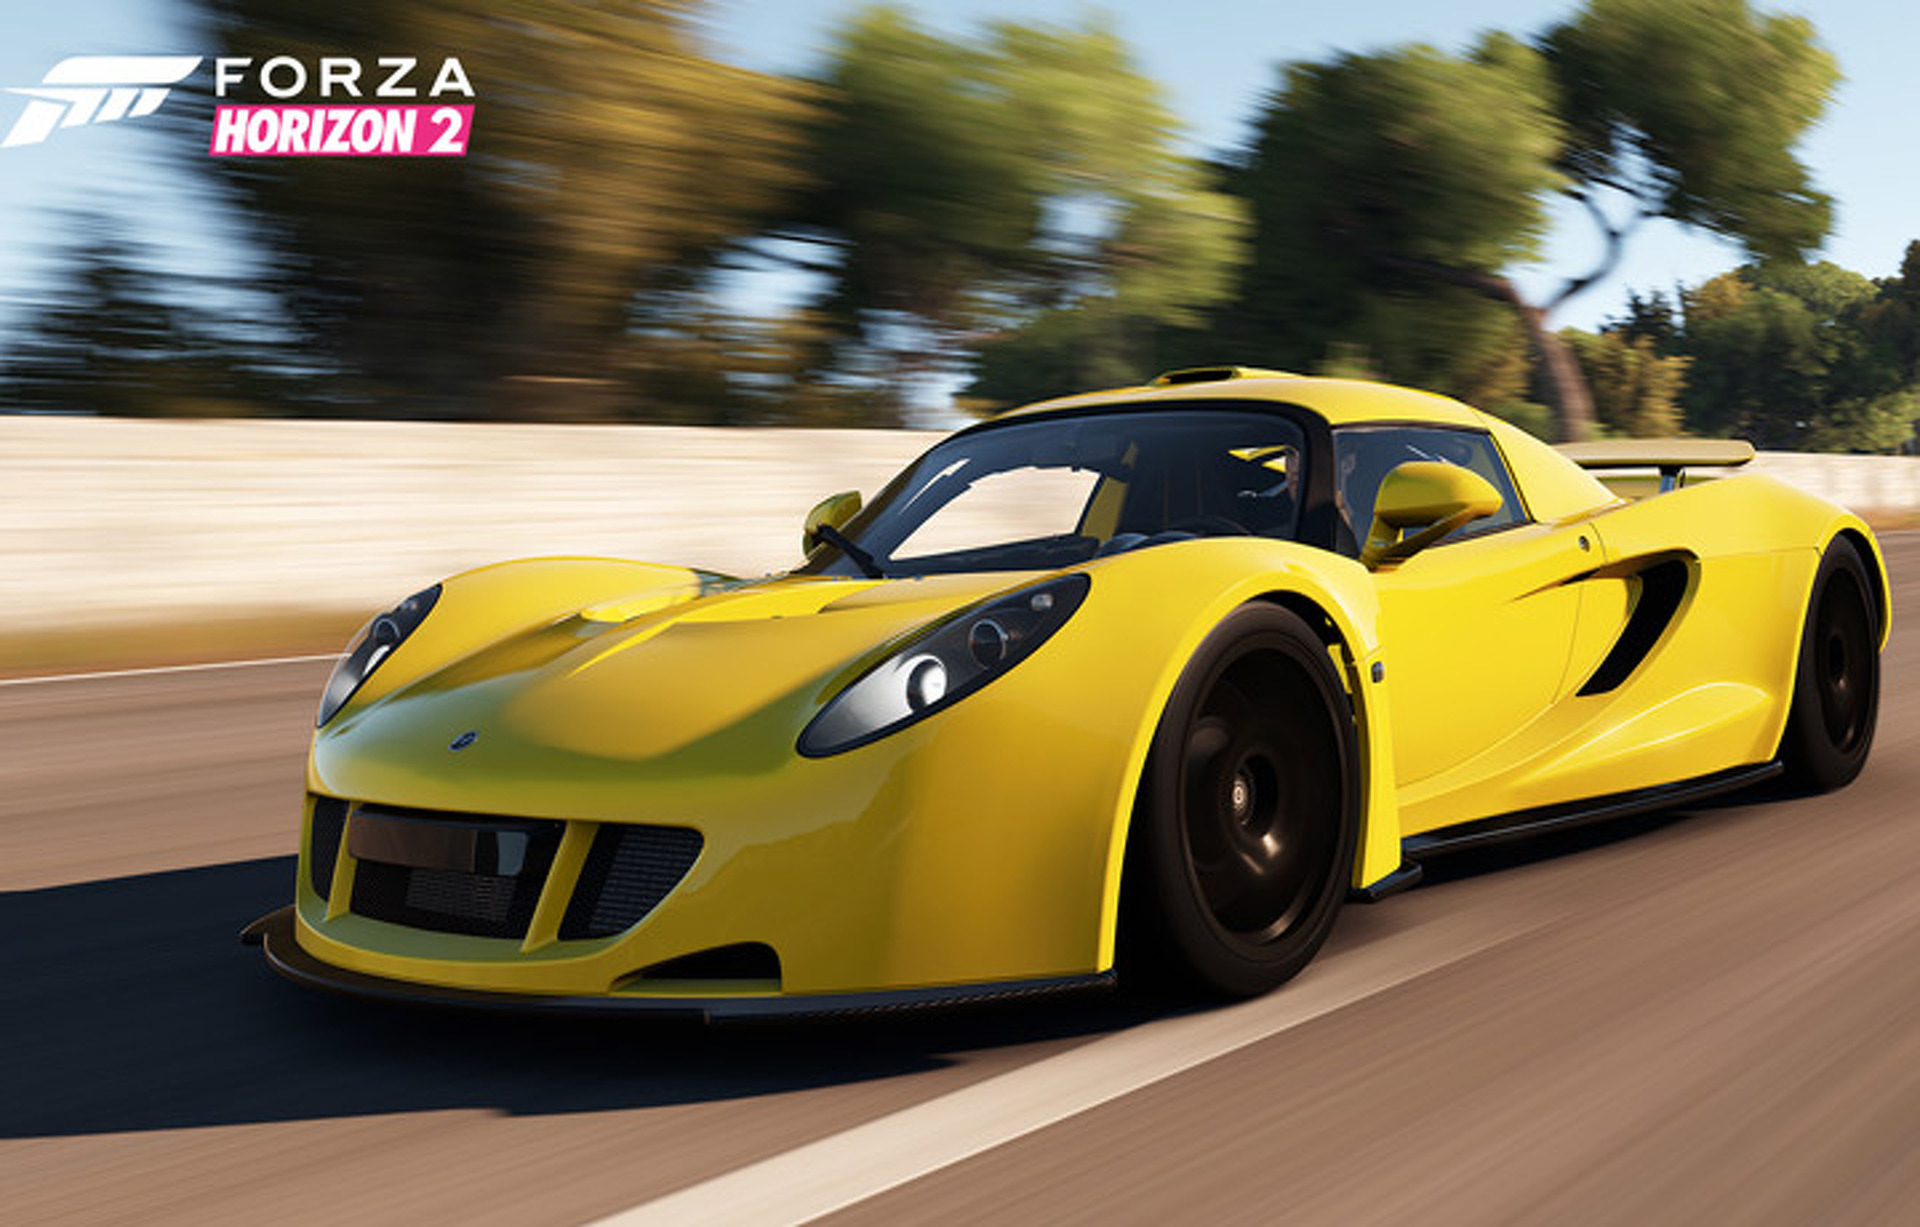 Bugatti Veyron And Hennessey Venom Gt Confirmed For Forza